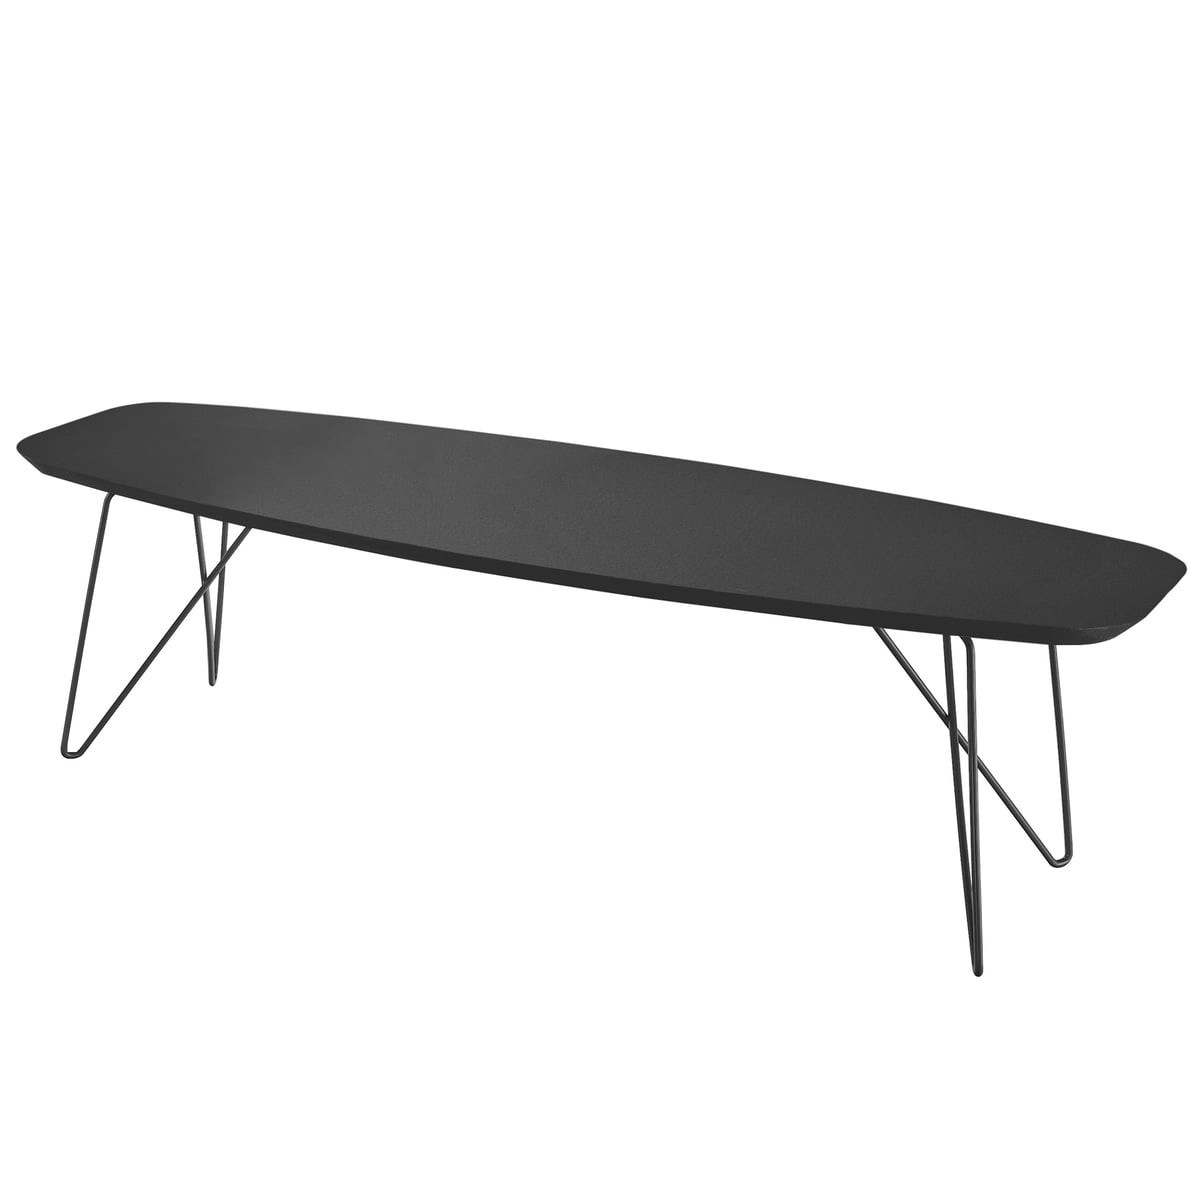 Zanotta ink couch table im shop zanotta ink side table 60 x 160 cm black greentooth Gallery